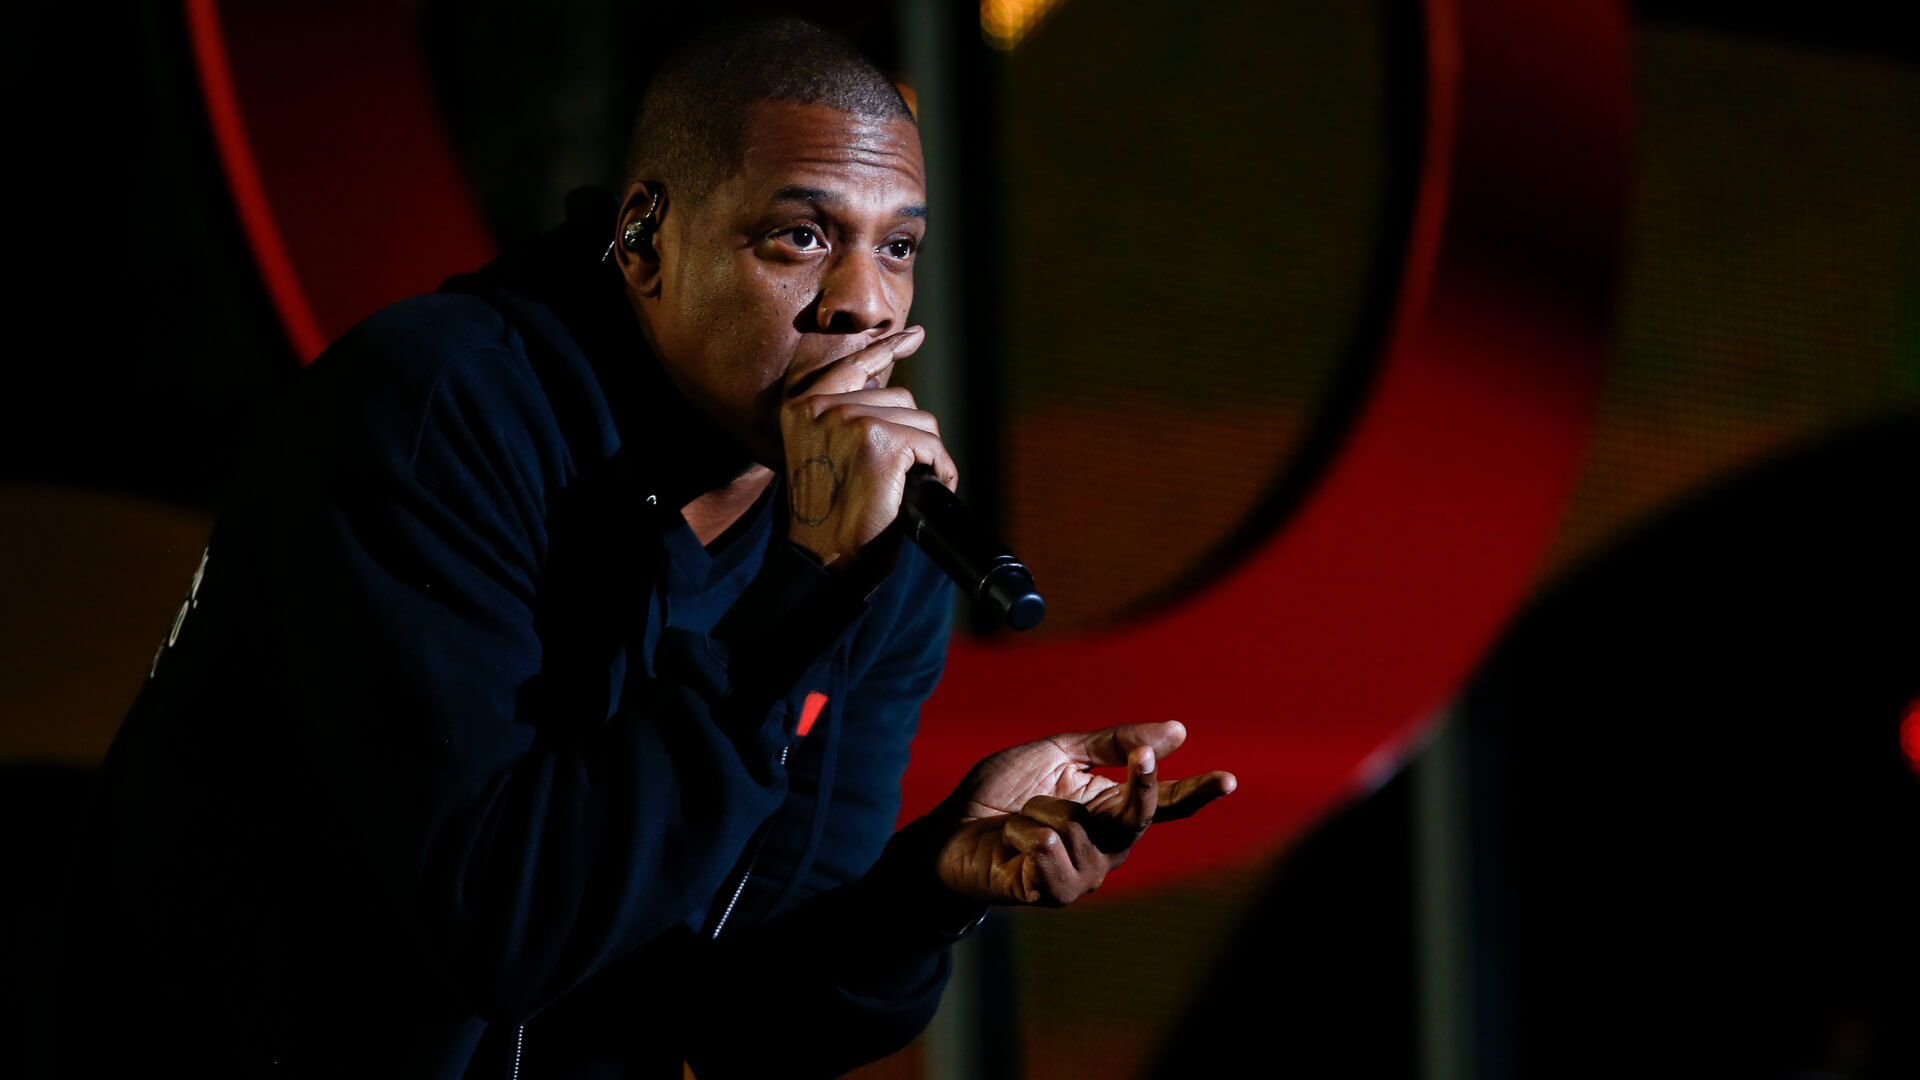 Jay-Z performing onstage at the 2014 Global Citizen Festival